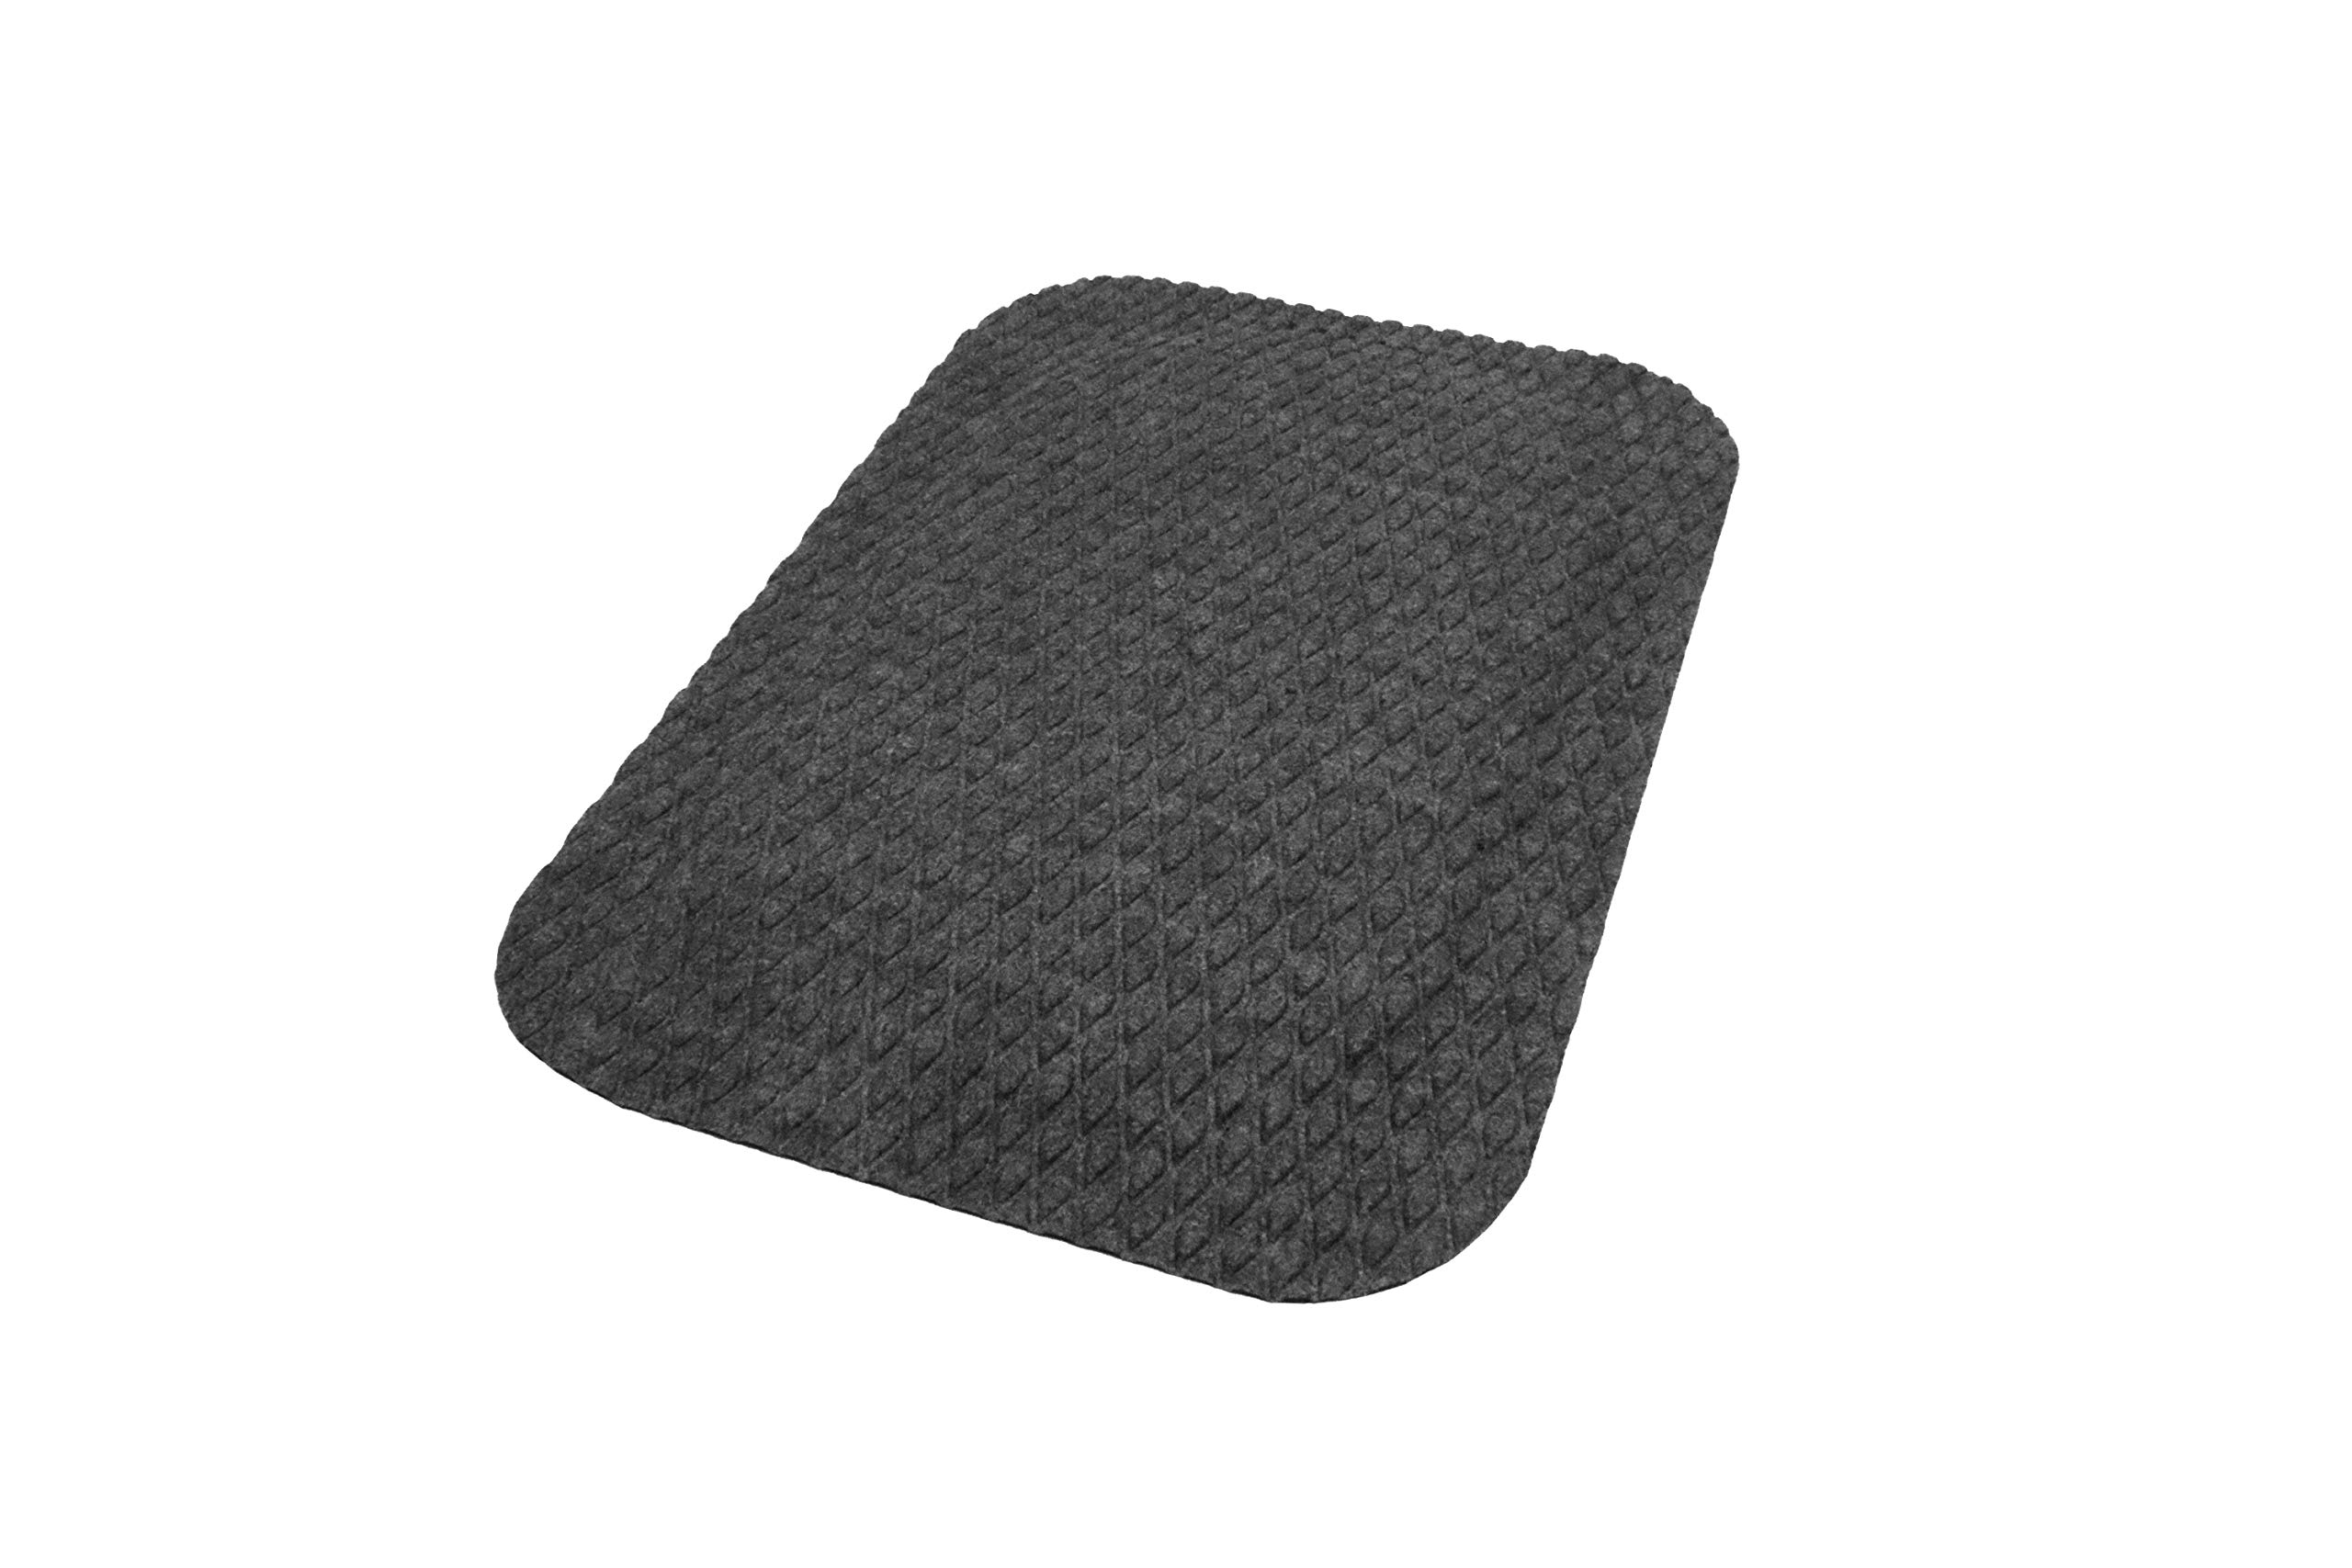 Hog Heaven Fashion Anti-Fatigue Mat – Stain-Resistant, Eco-Friendly, Attractive Fabric Surface Over Durable Memory Foam (Coal Black, 2' x 3', 7/8-inch Thick)